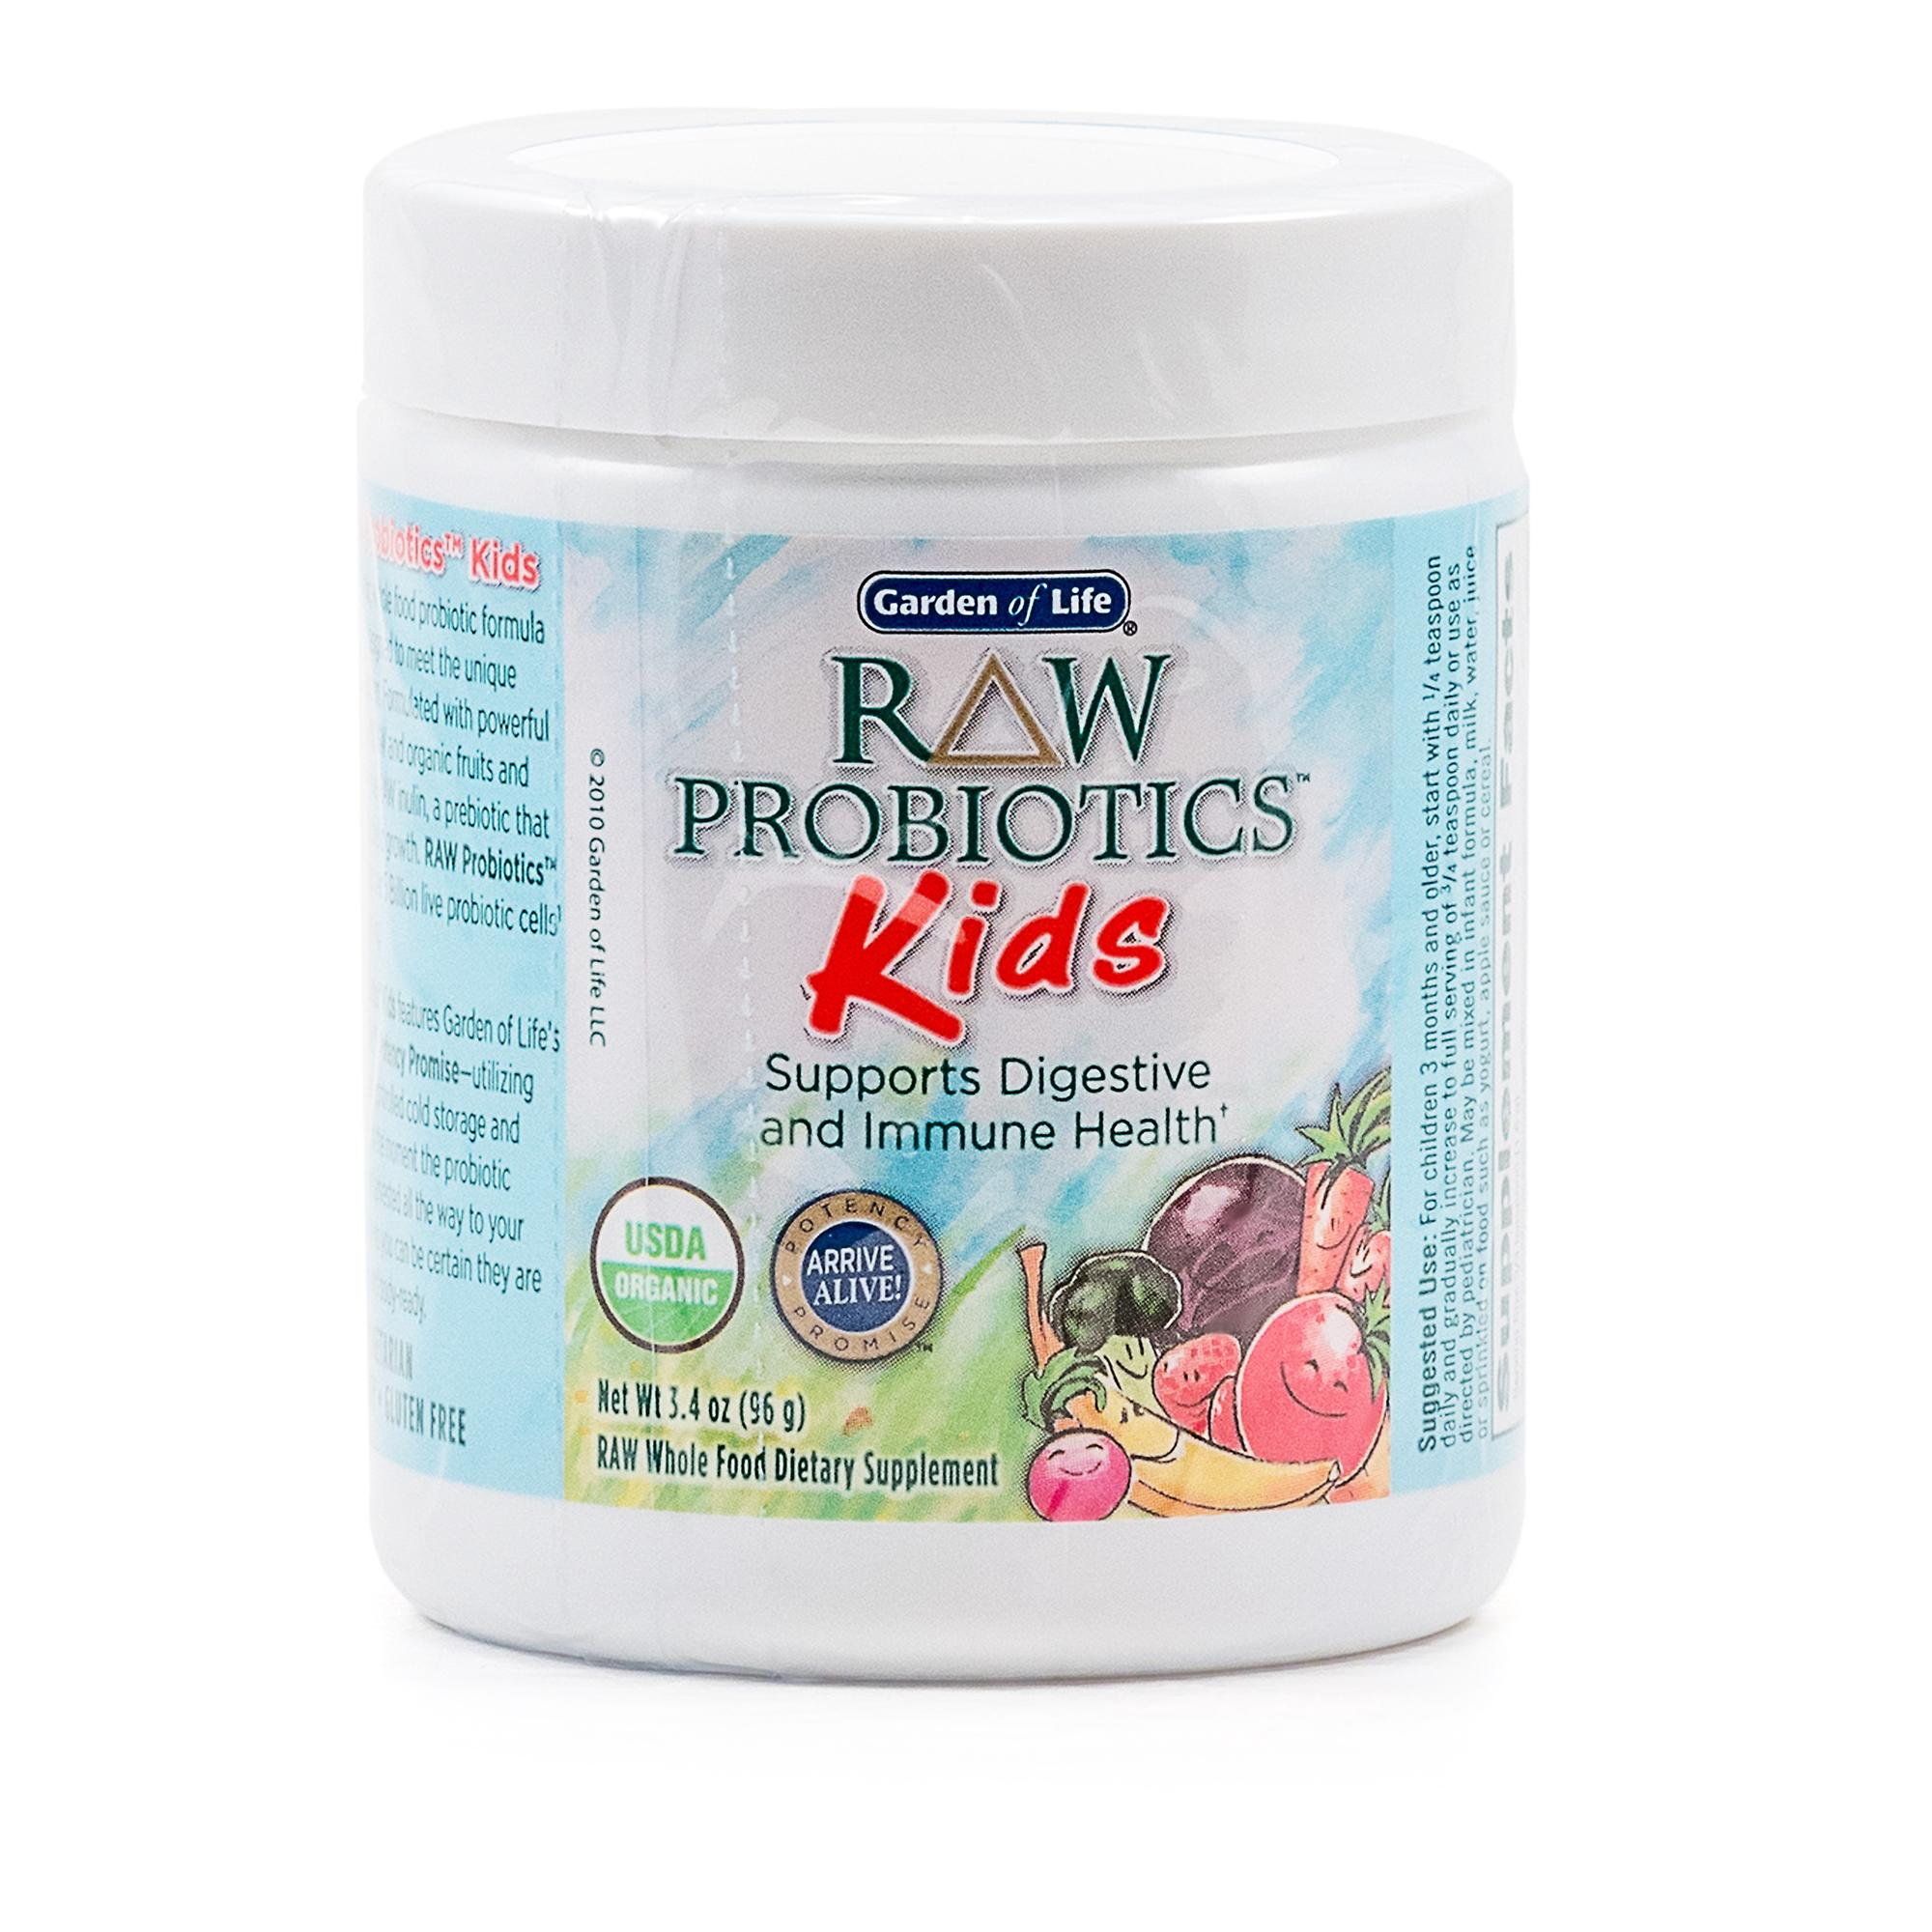 garden of life raw probiotics kids review labdoor